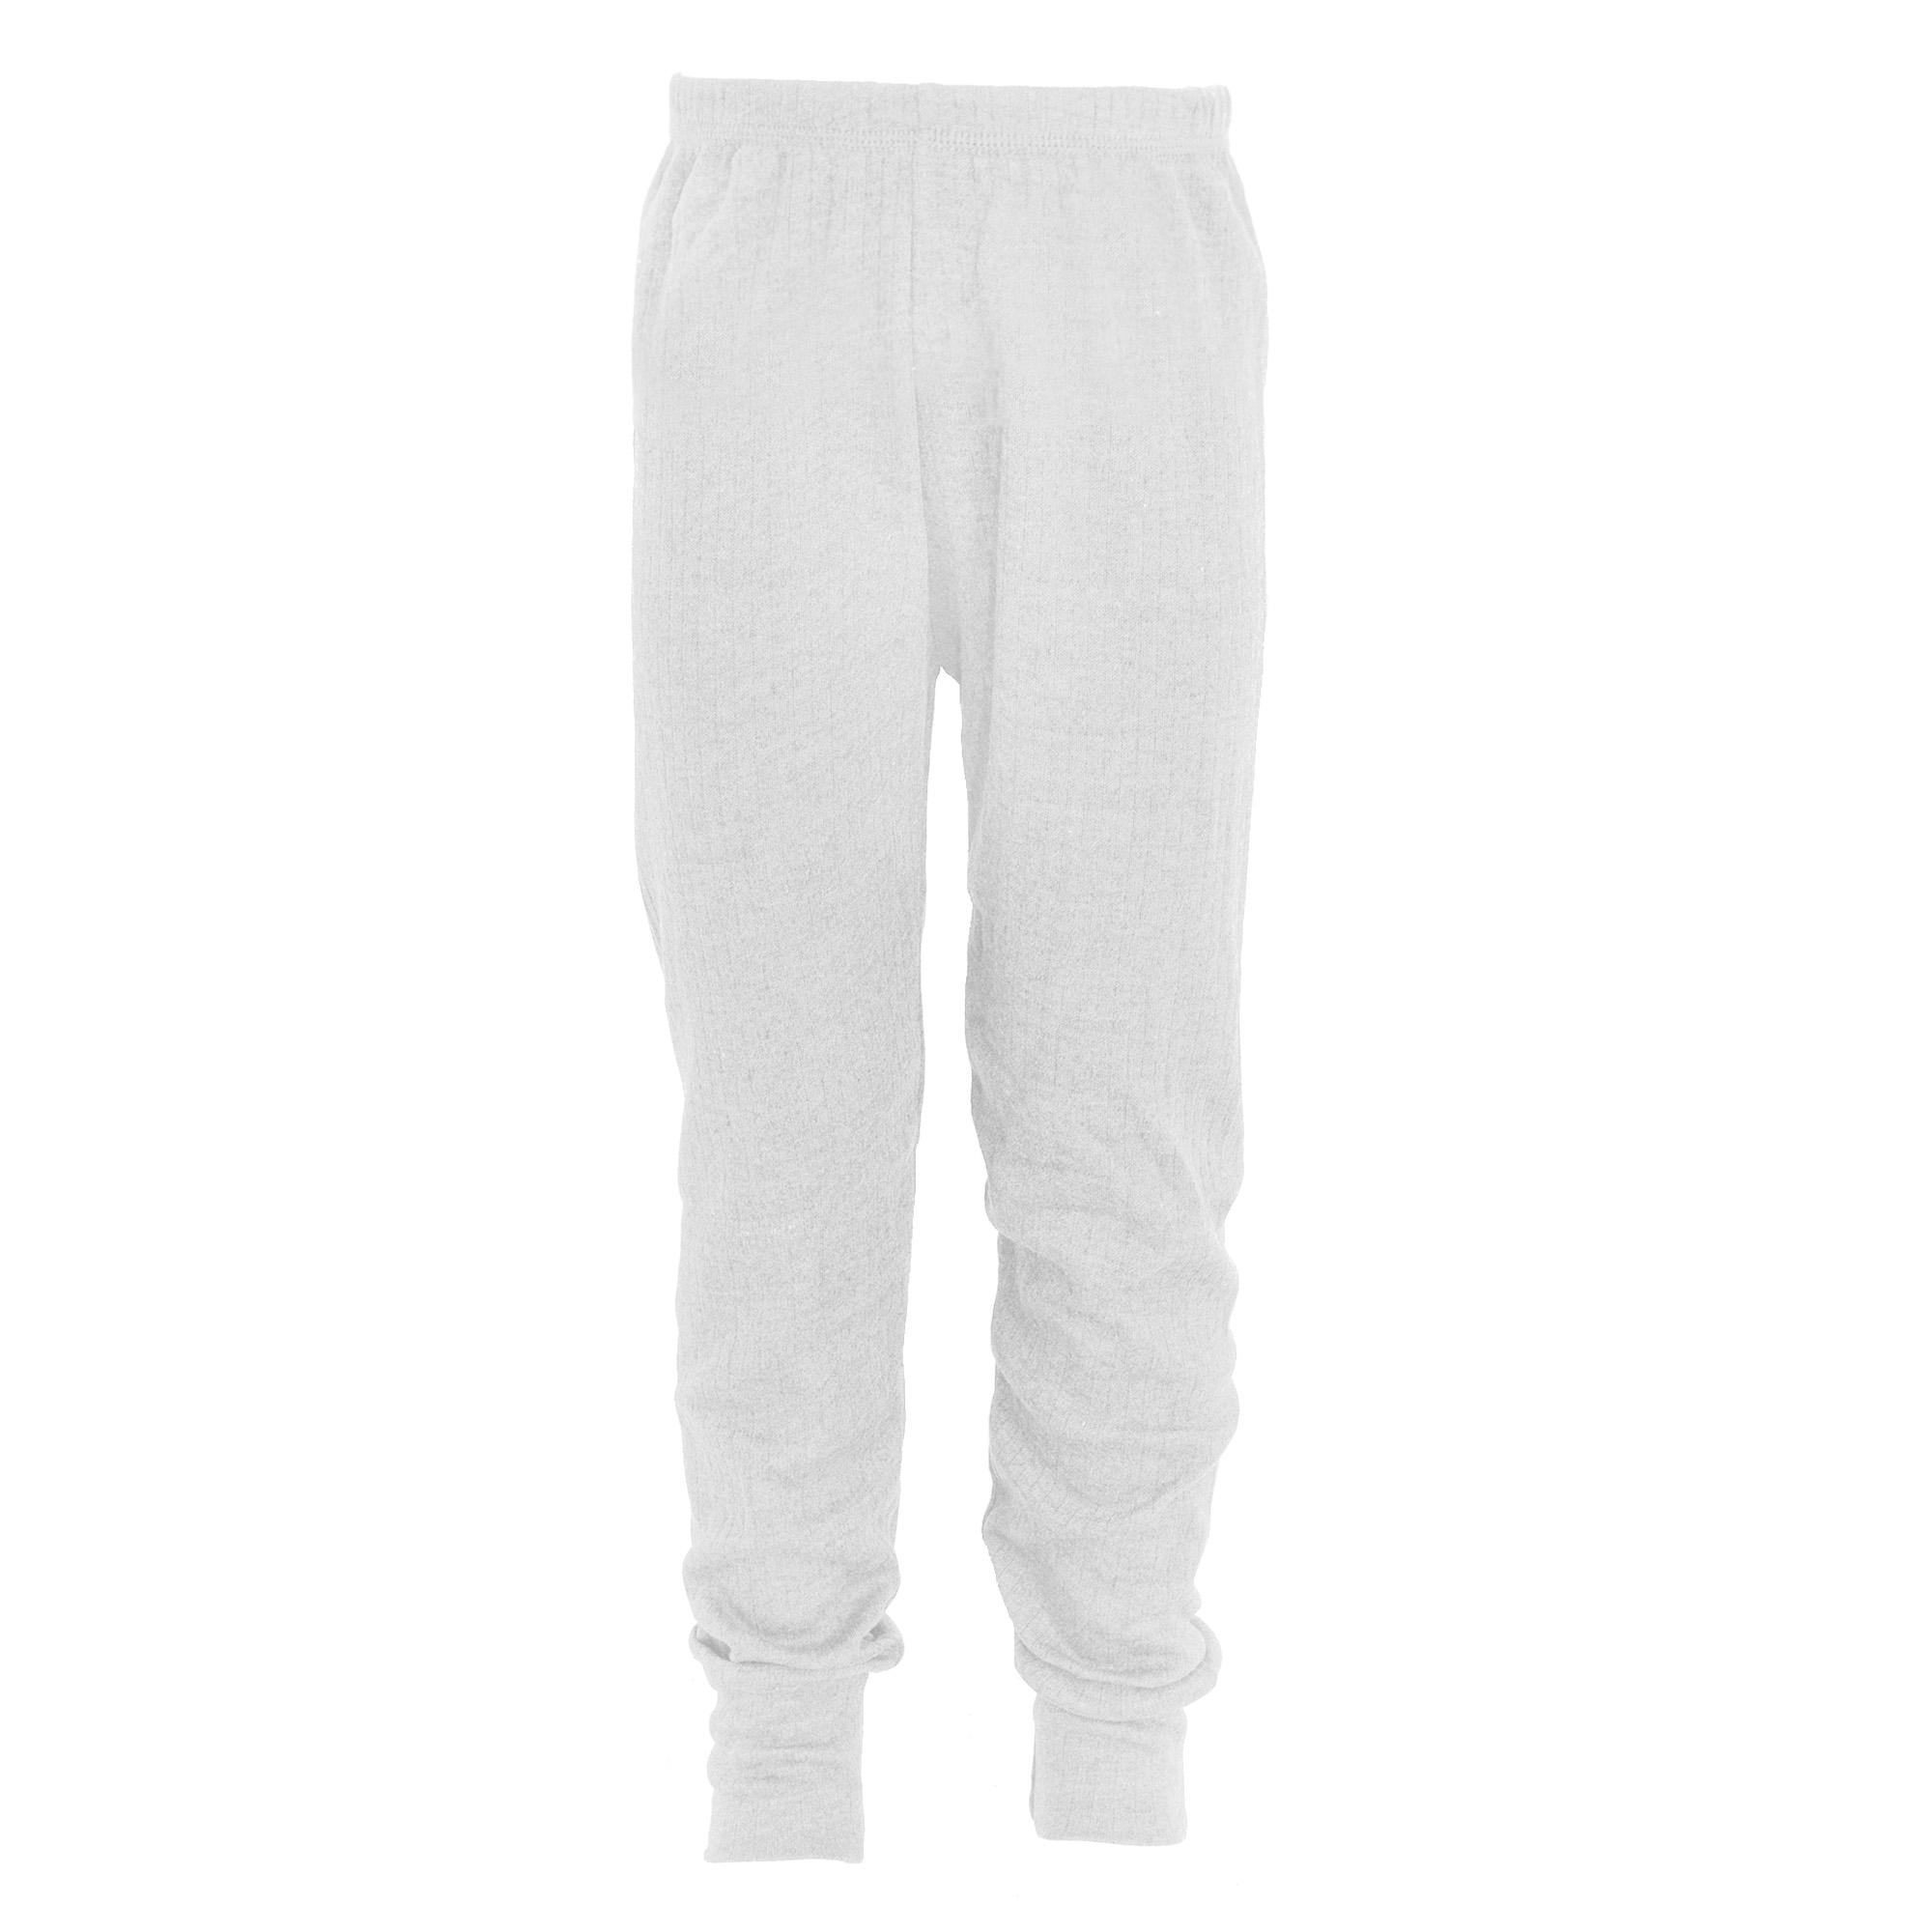 THERM127 FLOSO Unisex Childrens//Kids Thermal Underwear Long Sleeve Top